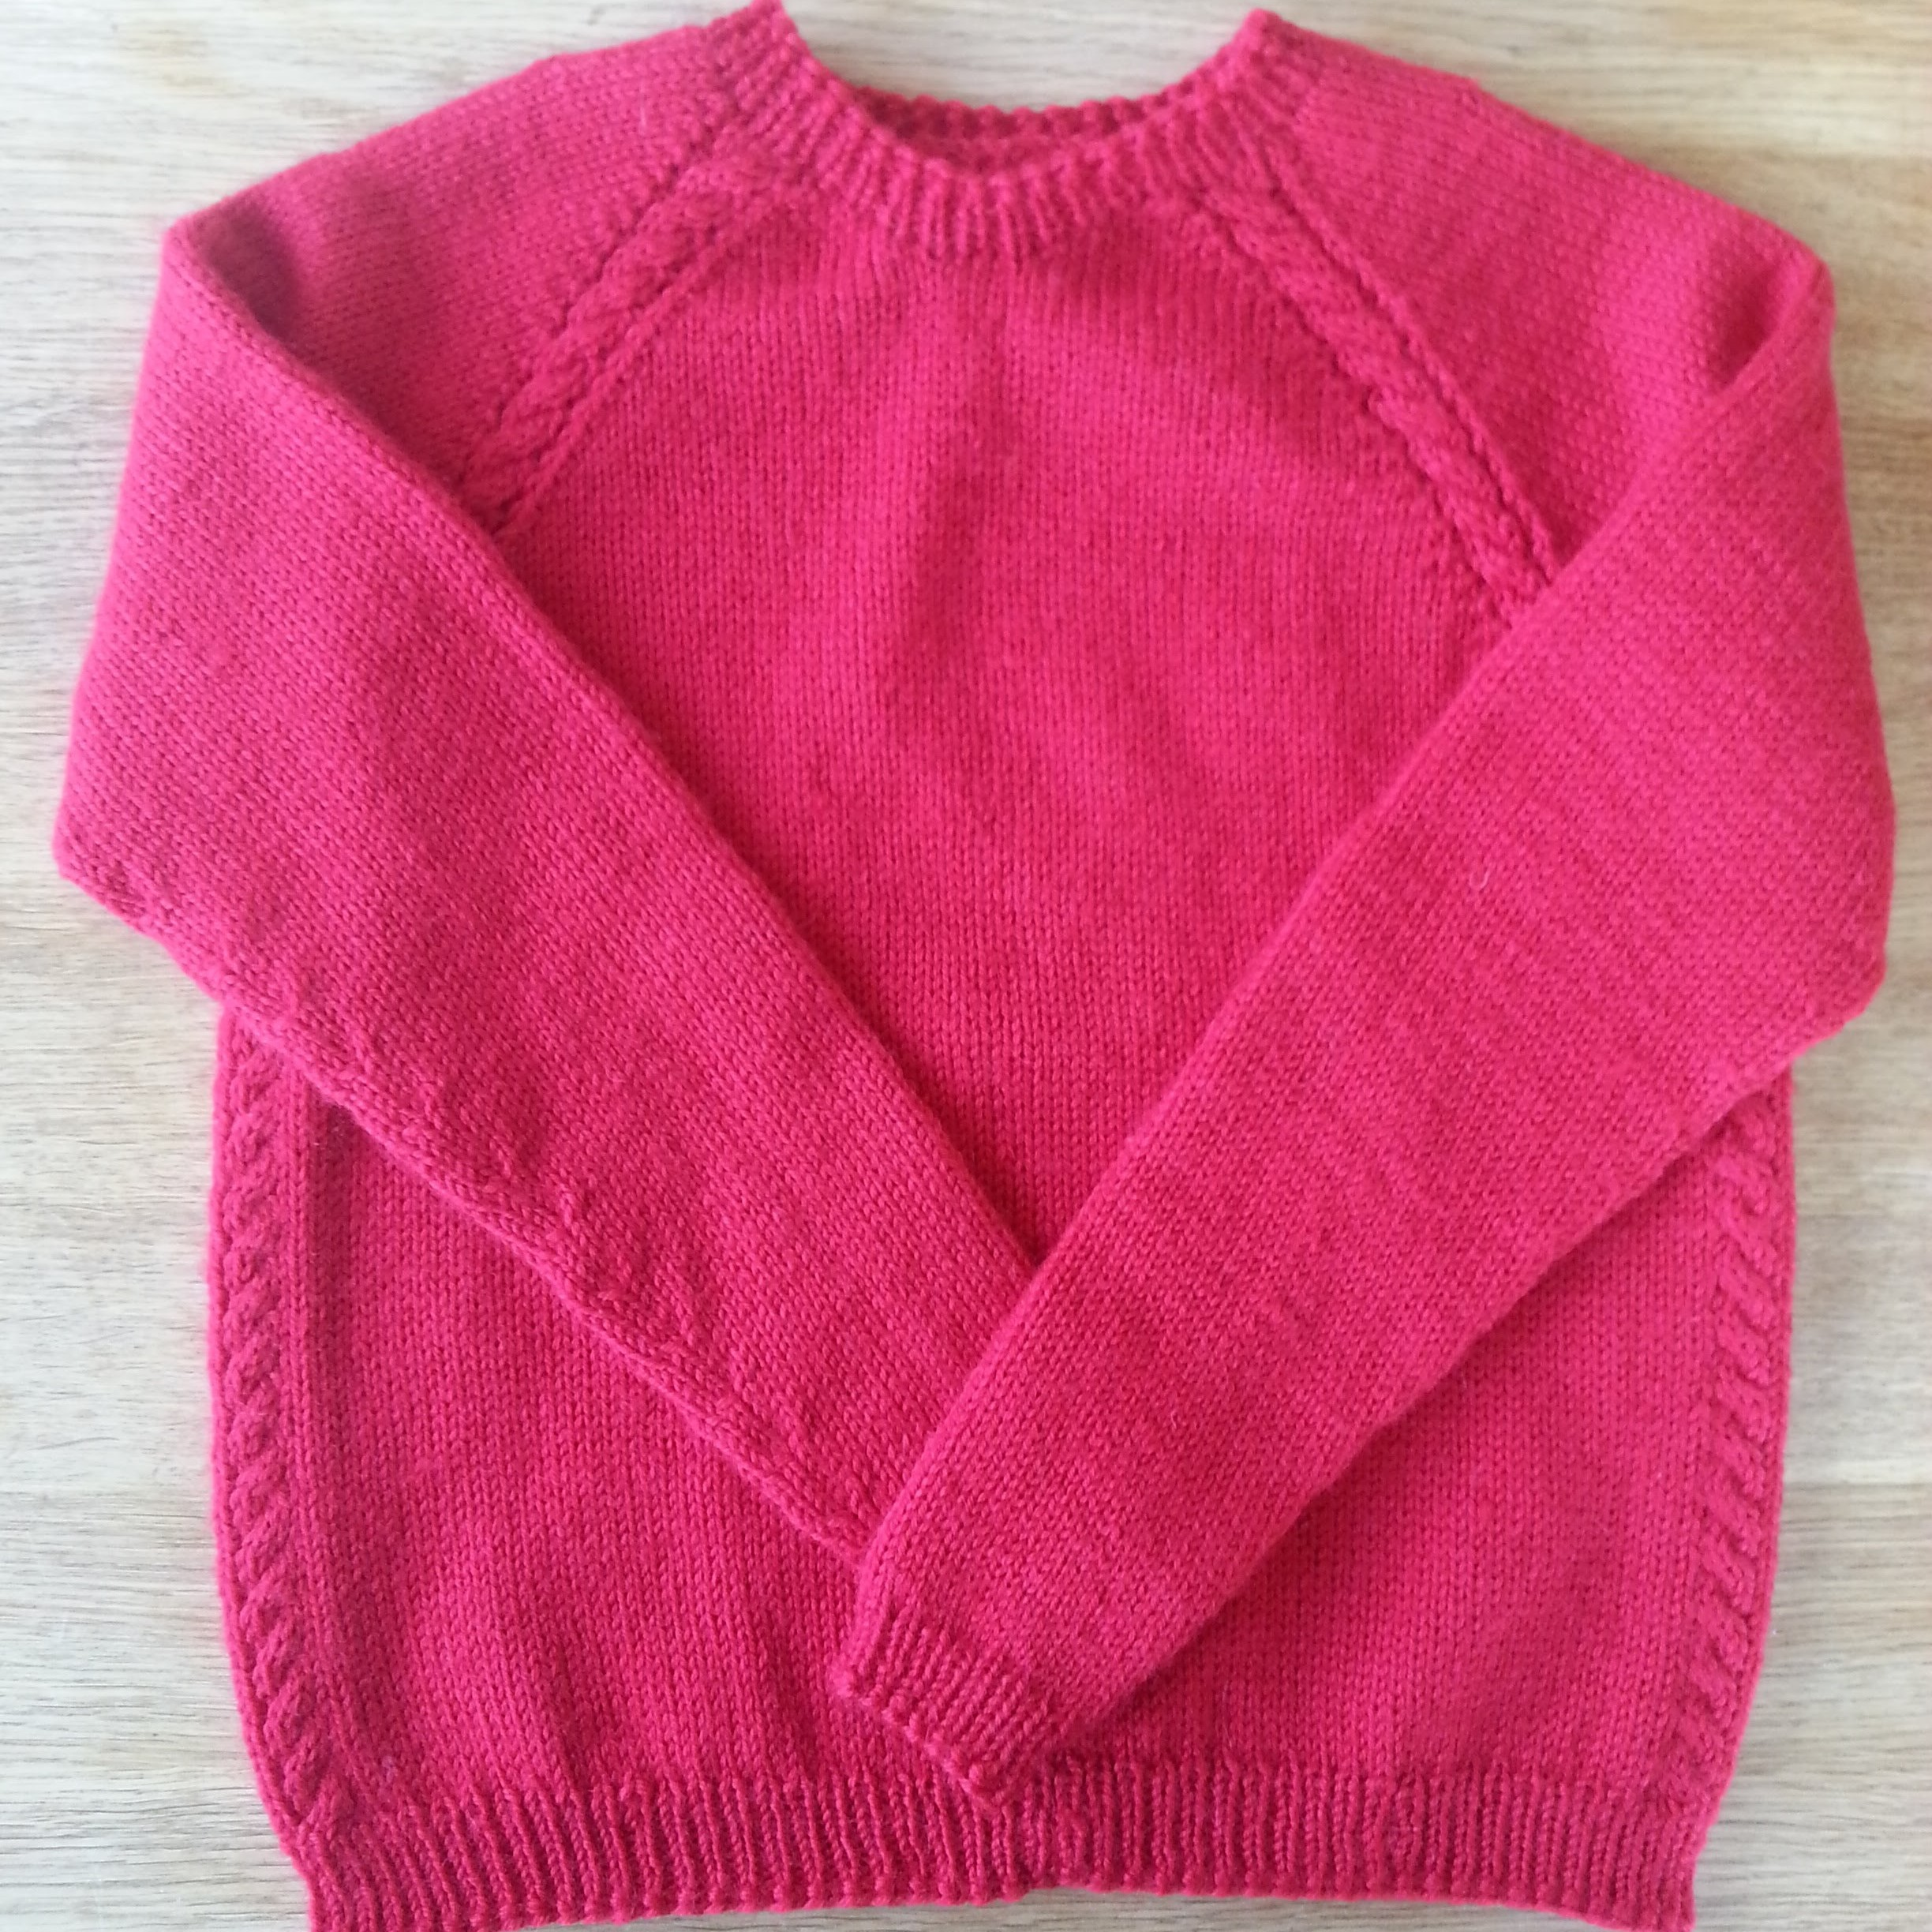 Crew neck in child size with cables